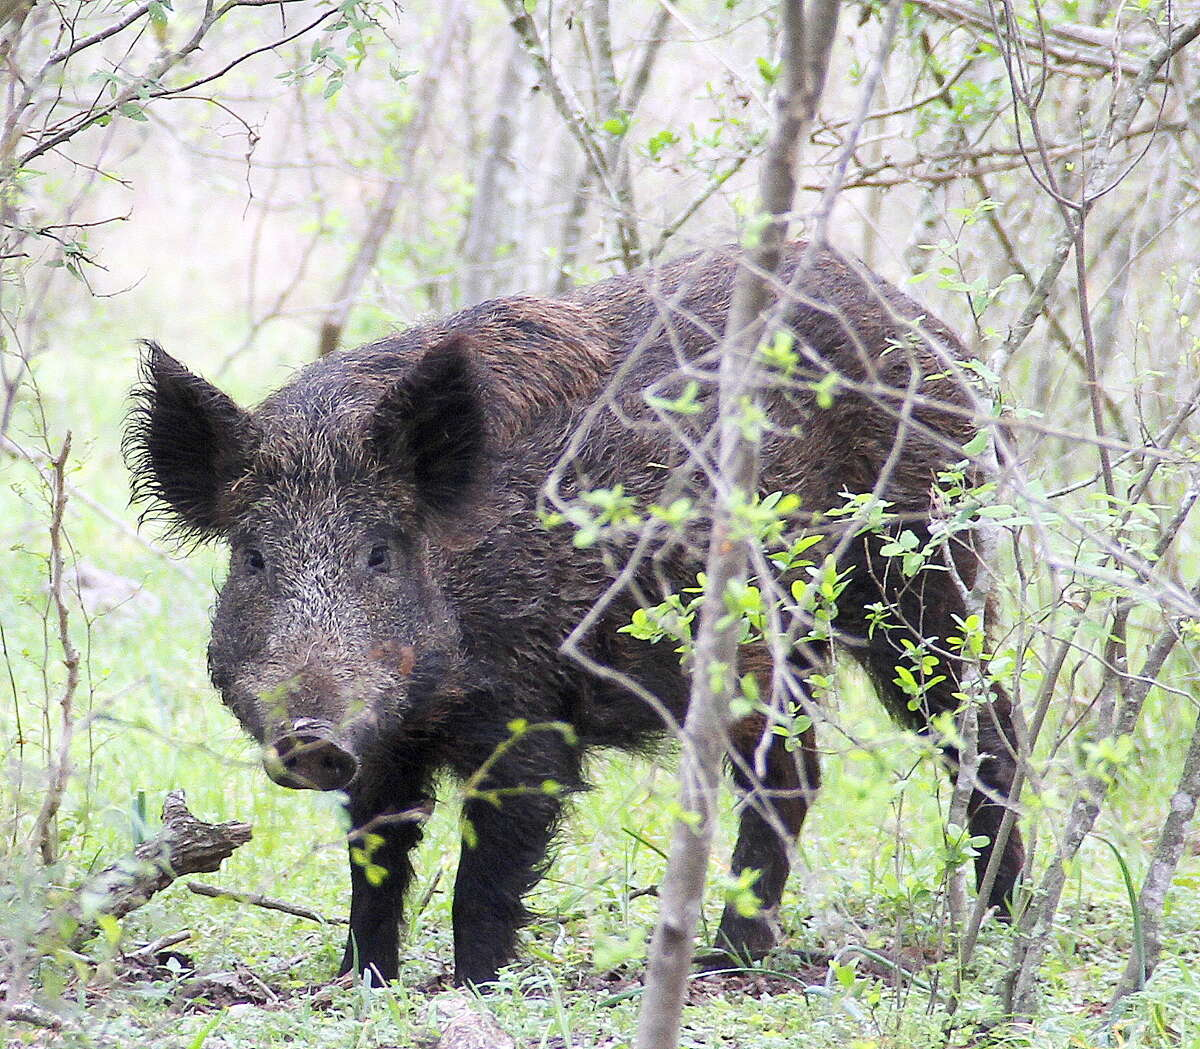 Feral hogs may live in suburban areas without humans knowing they are around. They can make their presence known by destroying lawns and gardens.